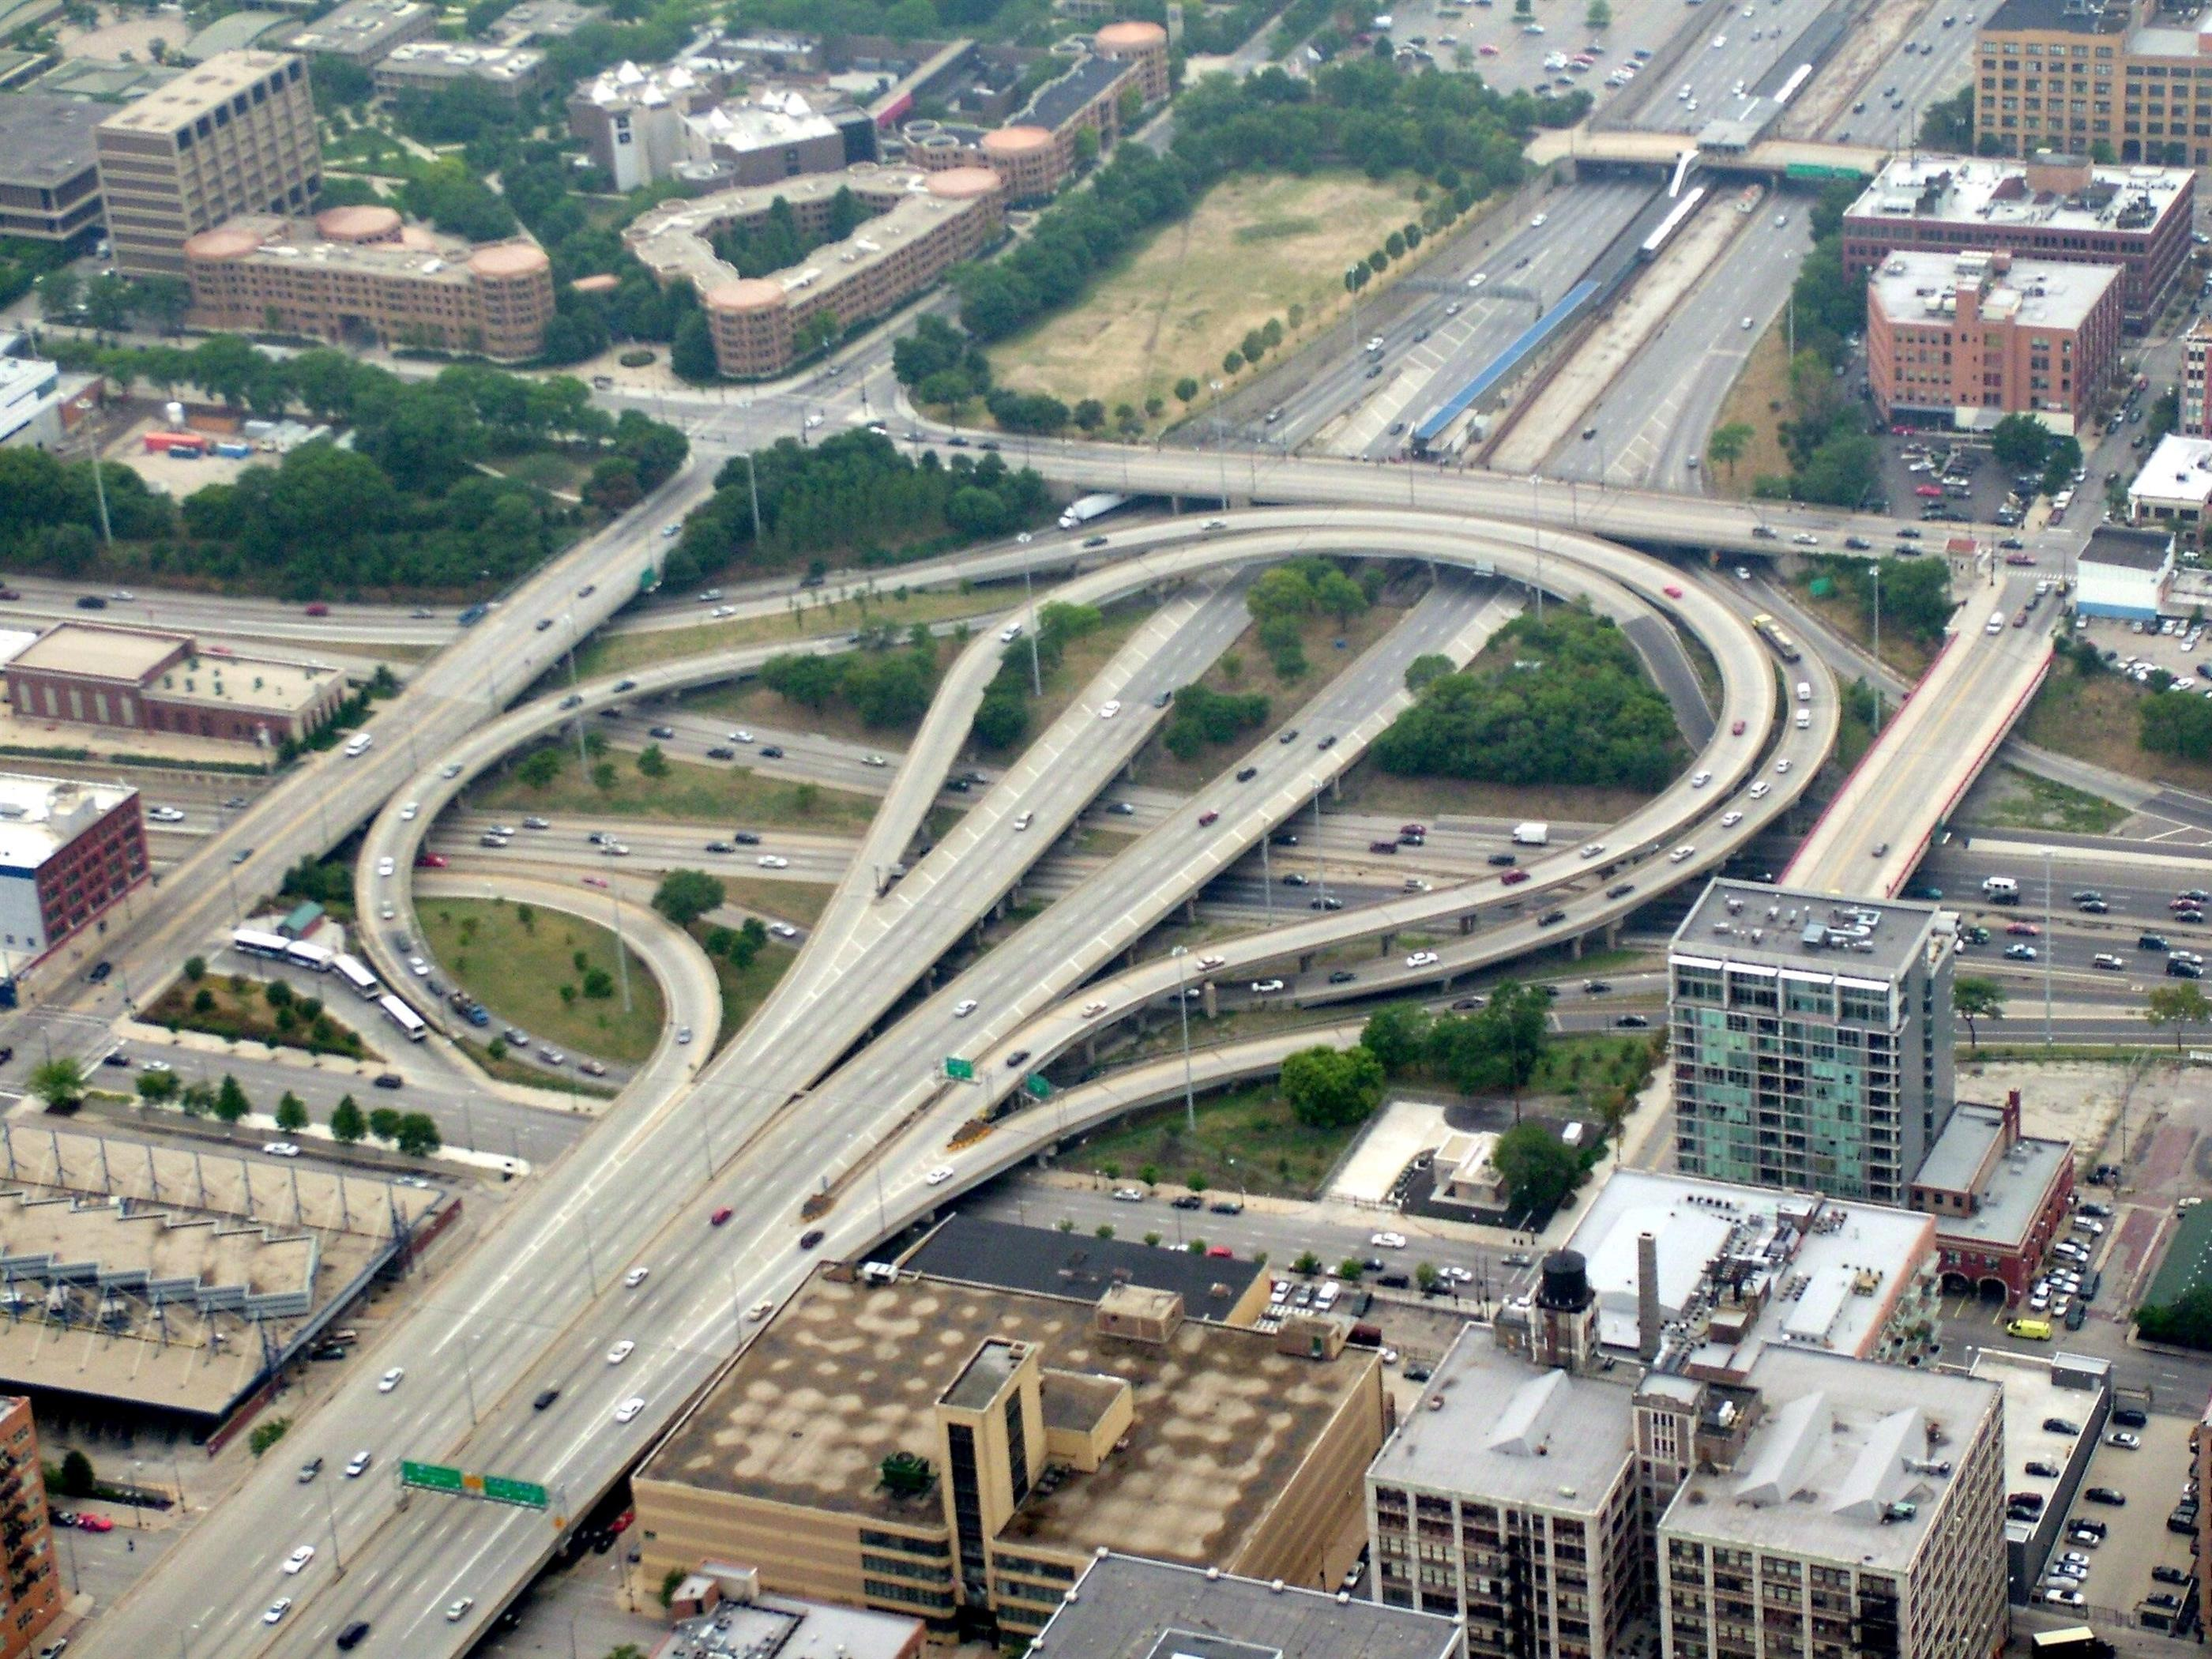 2800x2100 Overfly Circle Interchange Chicago